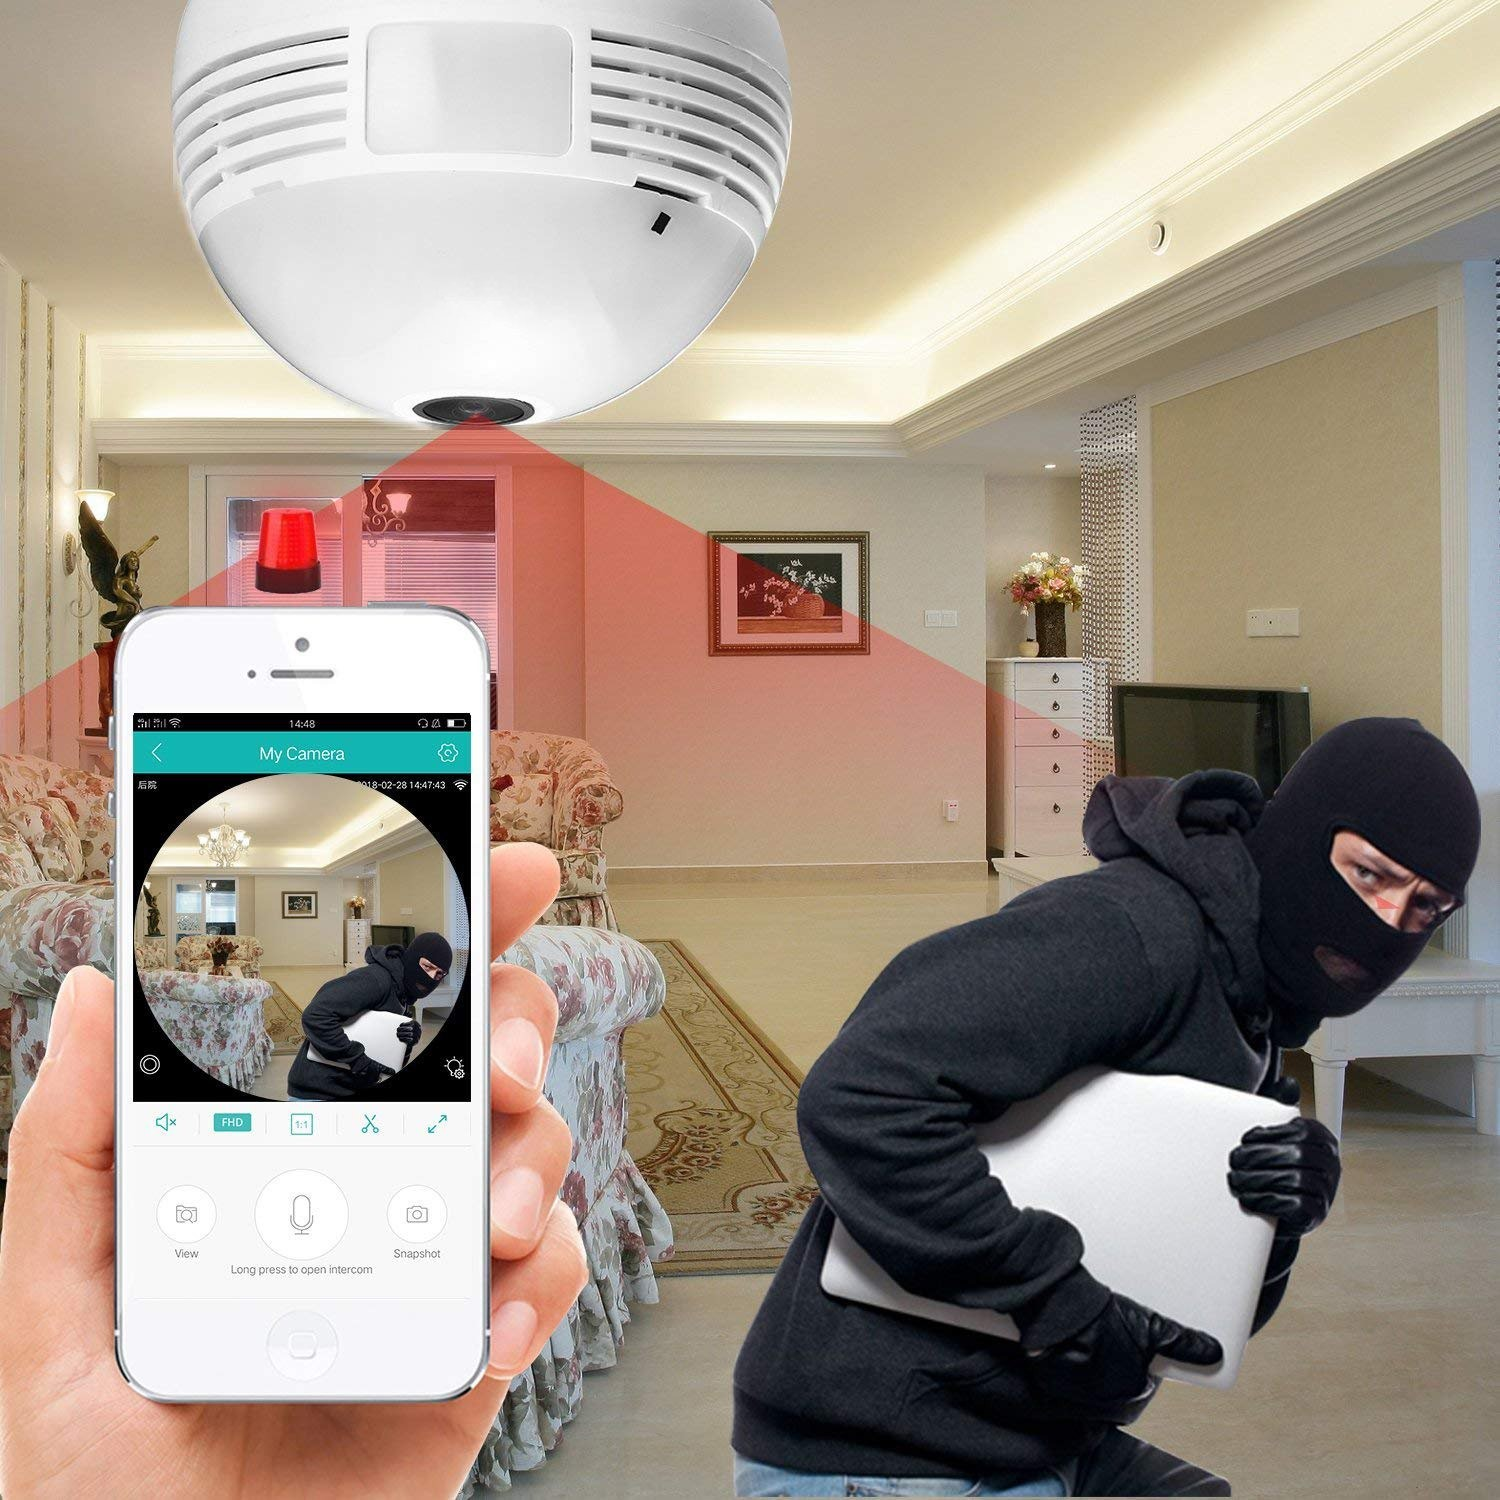 Why Do We Need a Security Camera in Our Home